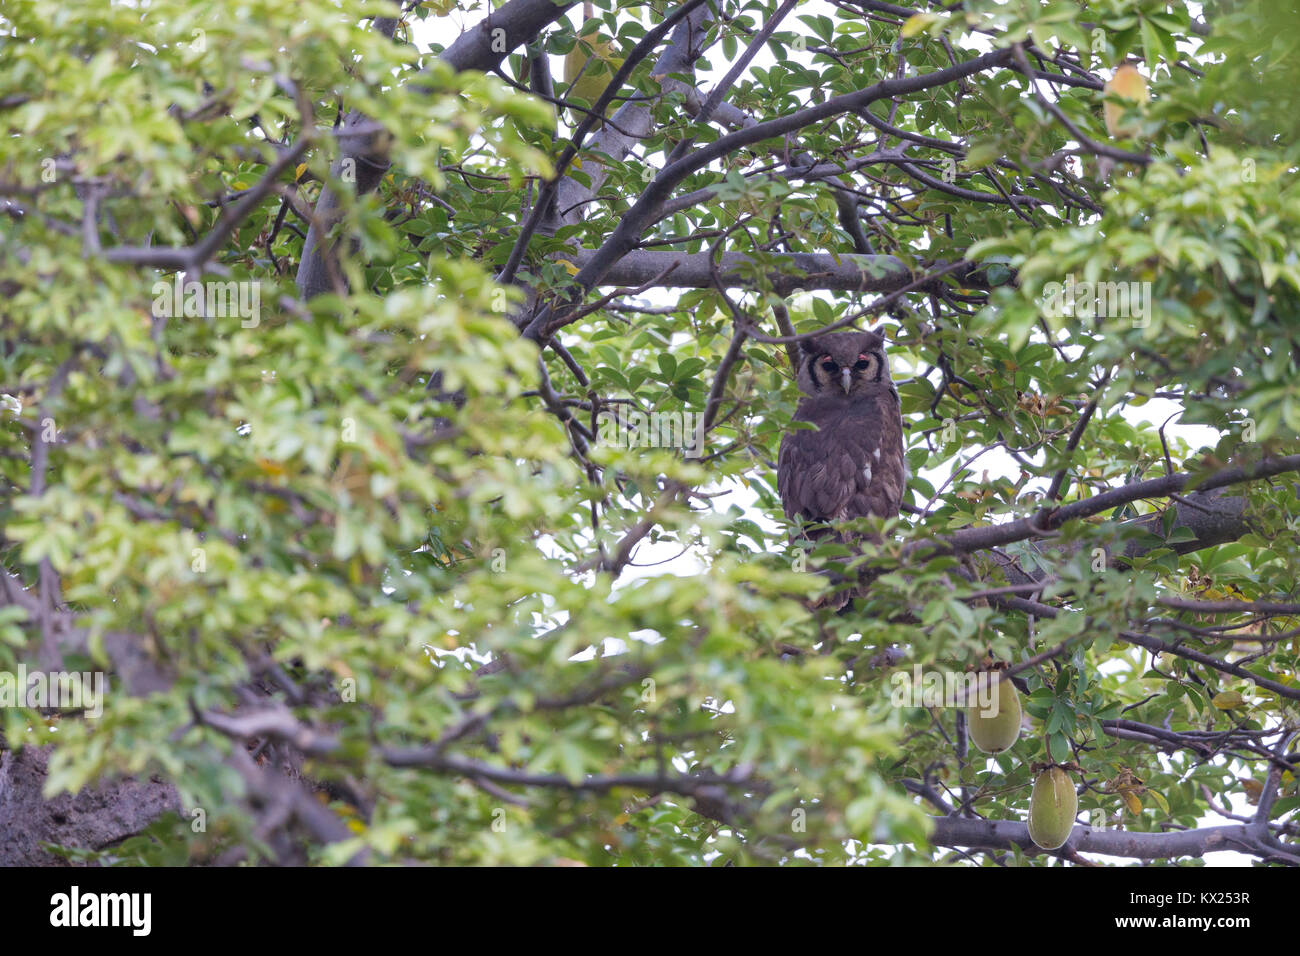 Verreaux's eagle owl Bubo lacteus, adult, roosting in tree, Brikama, The Gambia in November. - Stock Image